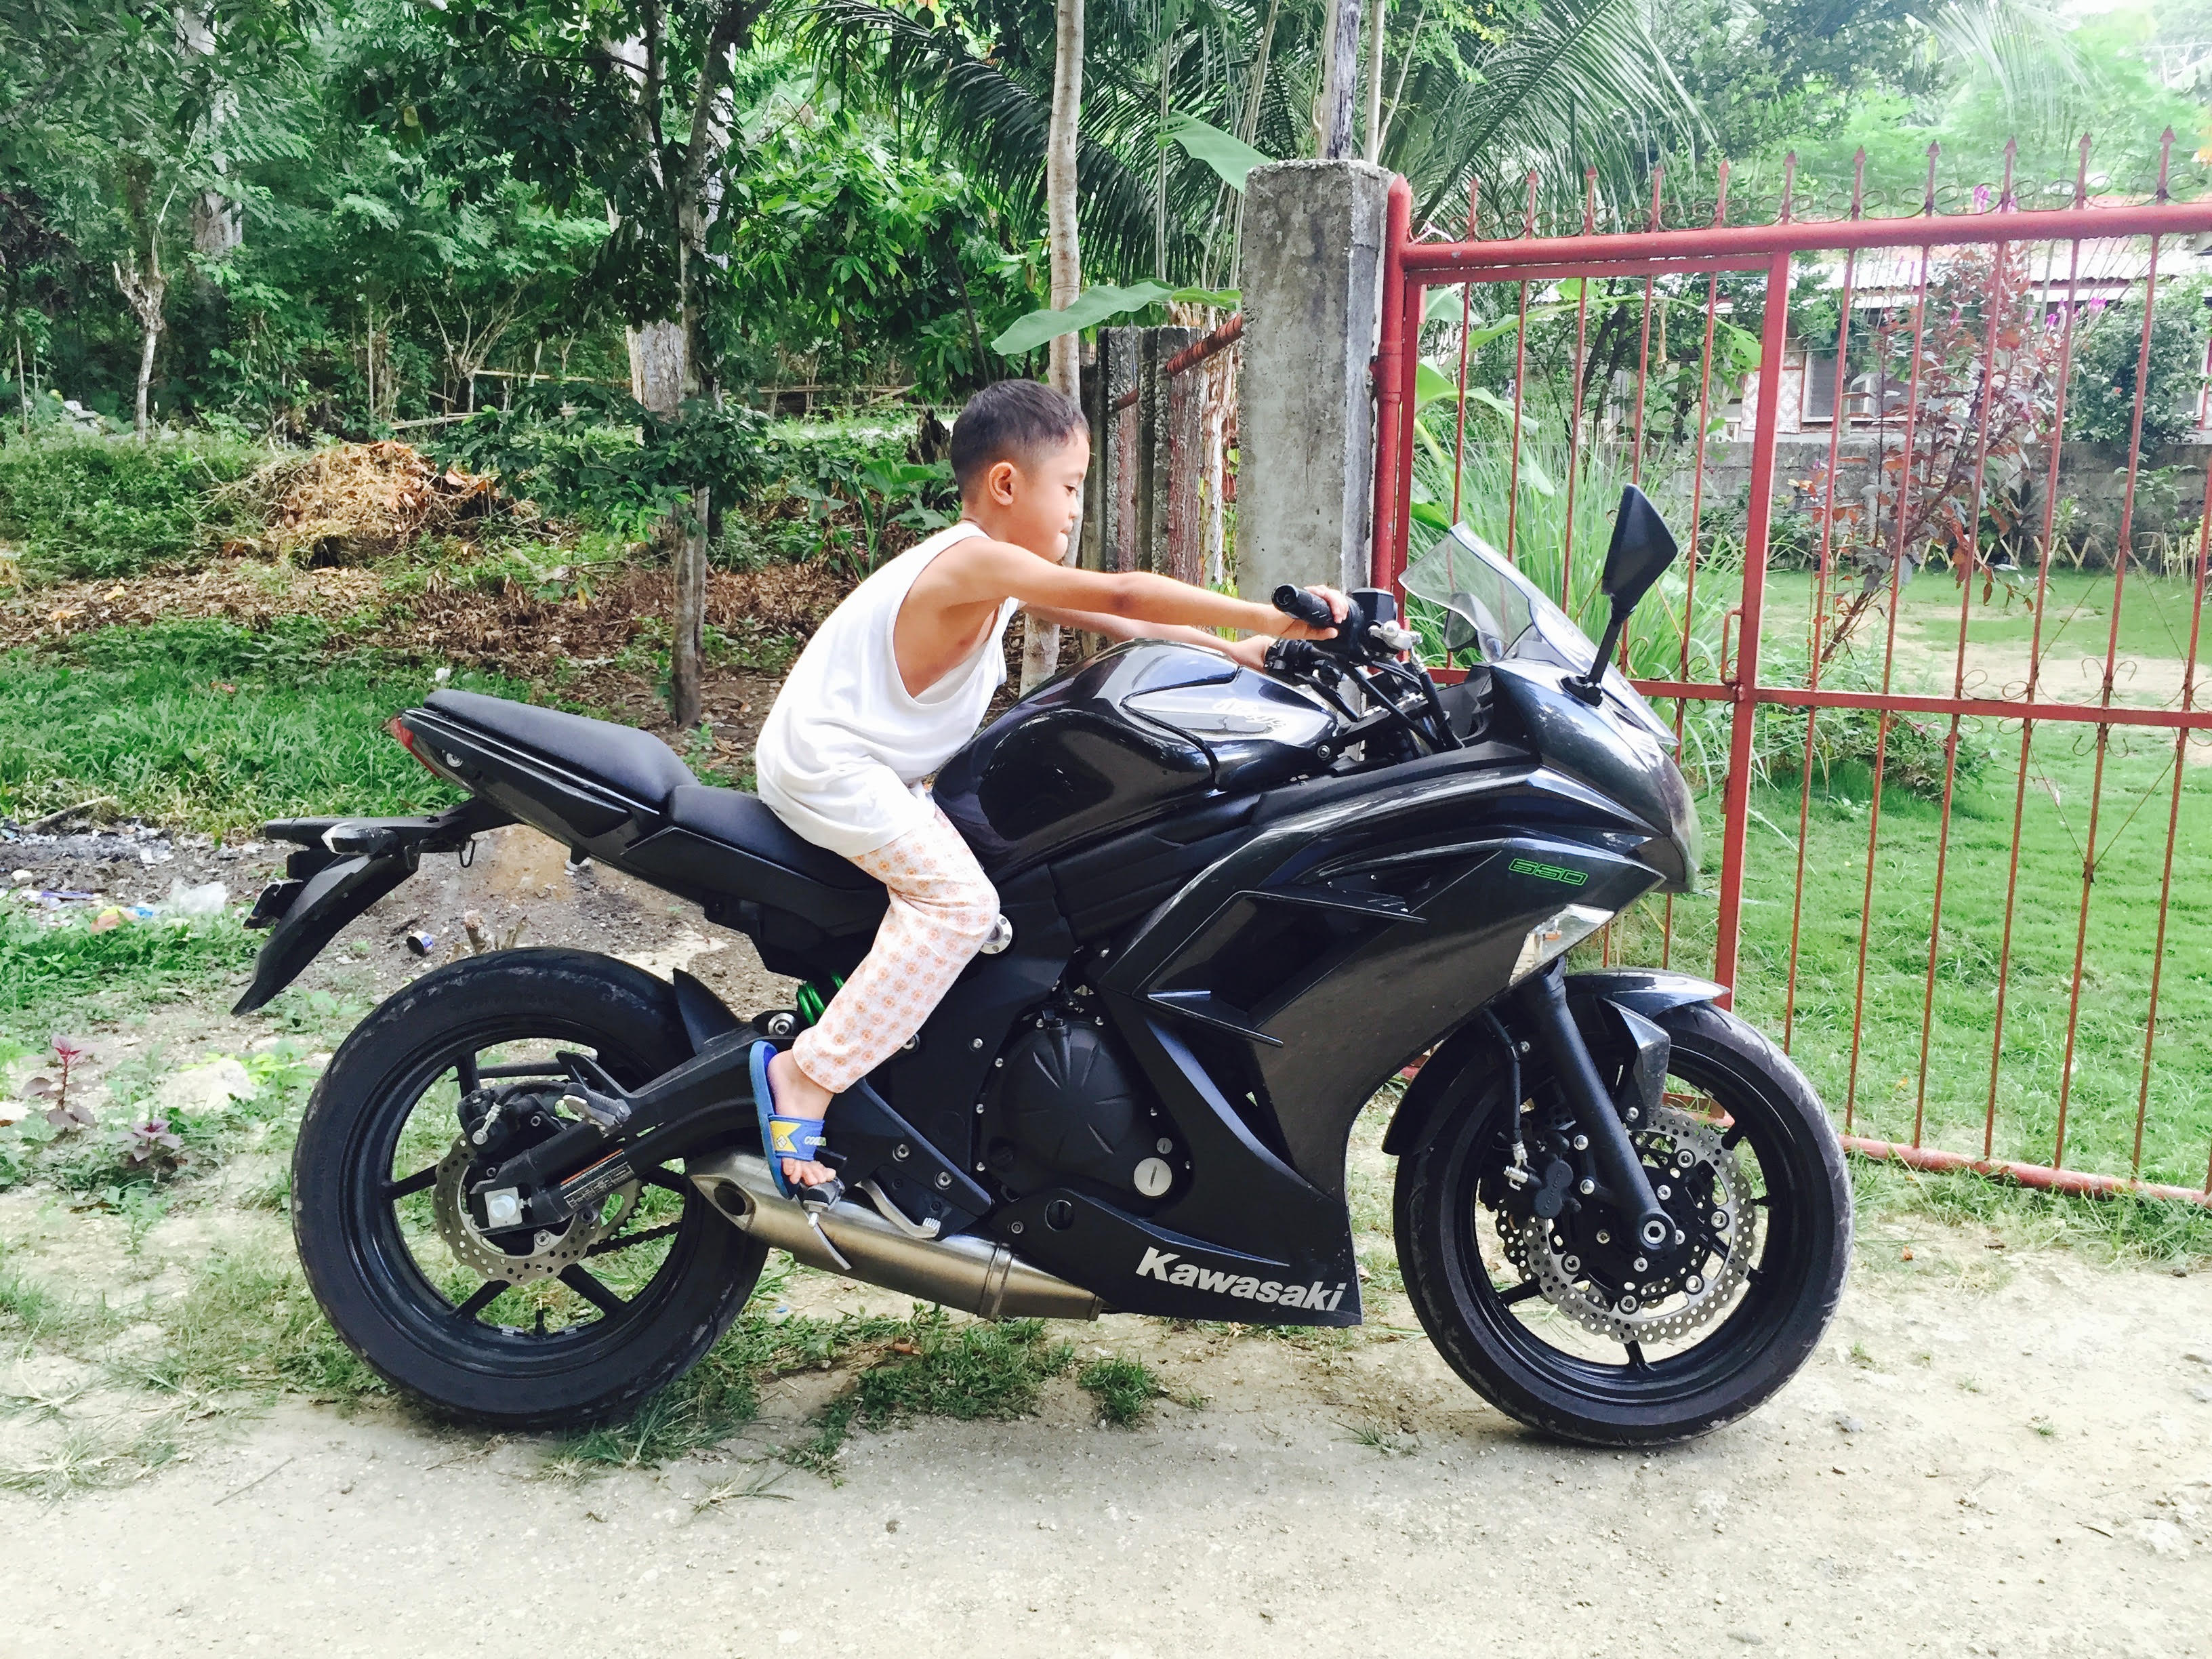 Check it out - motorcycles for rent in Bohol